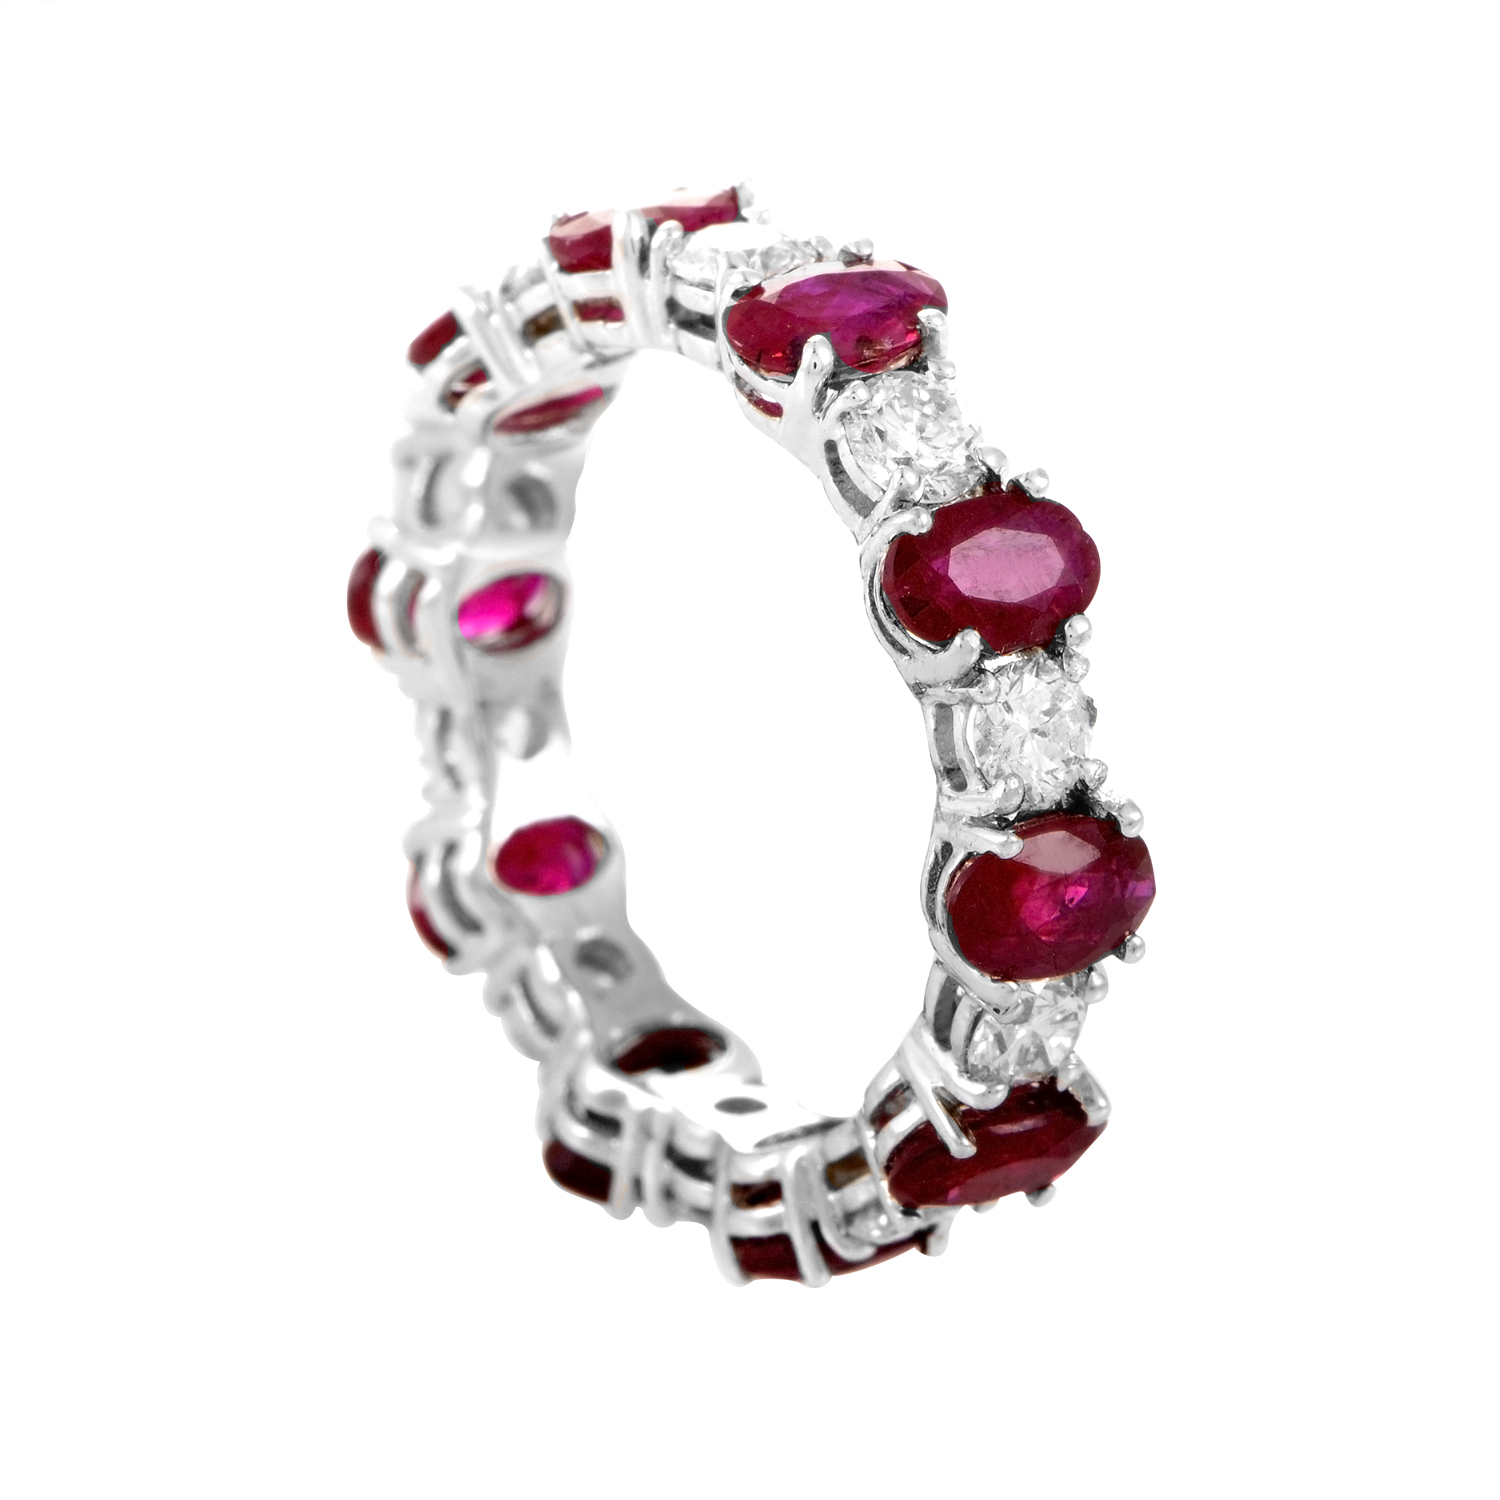 18K White Gold Ruby & Diamond Ring KORBW243ABBZ